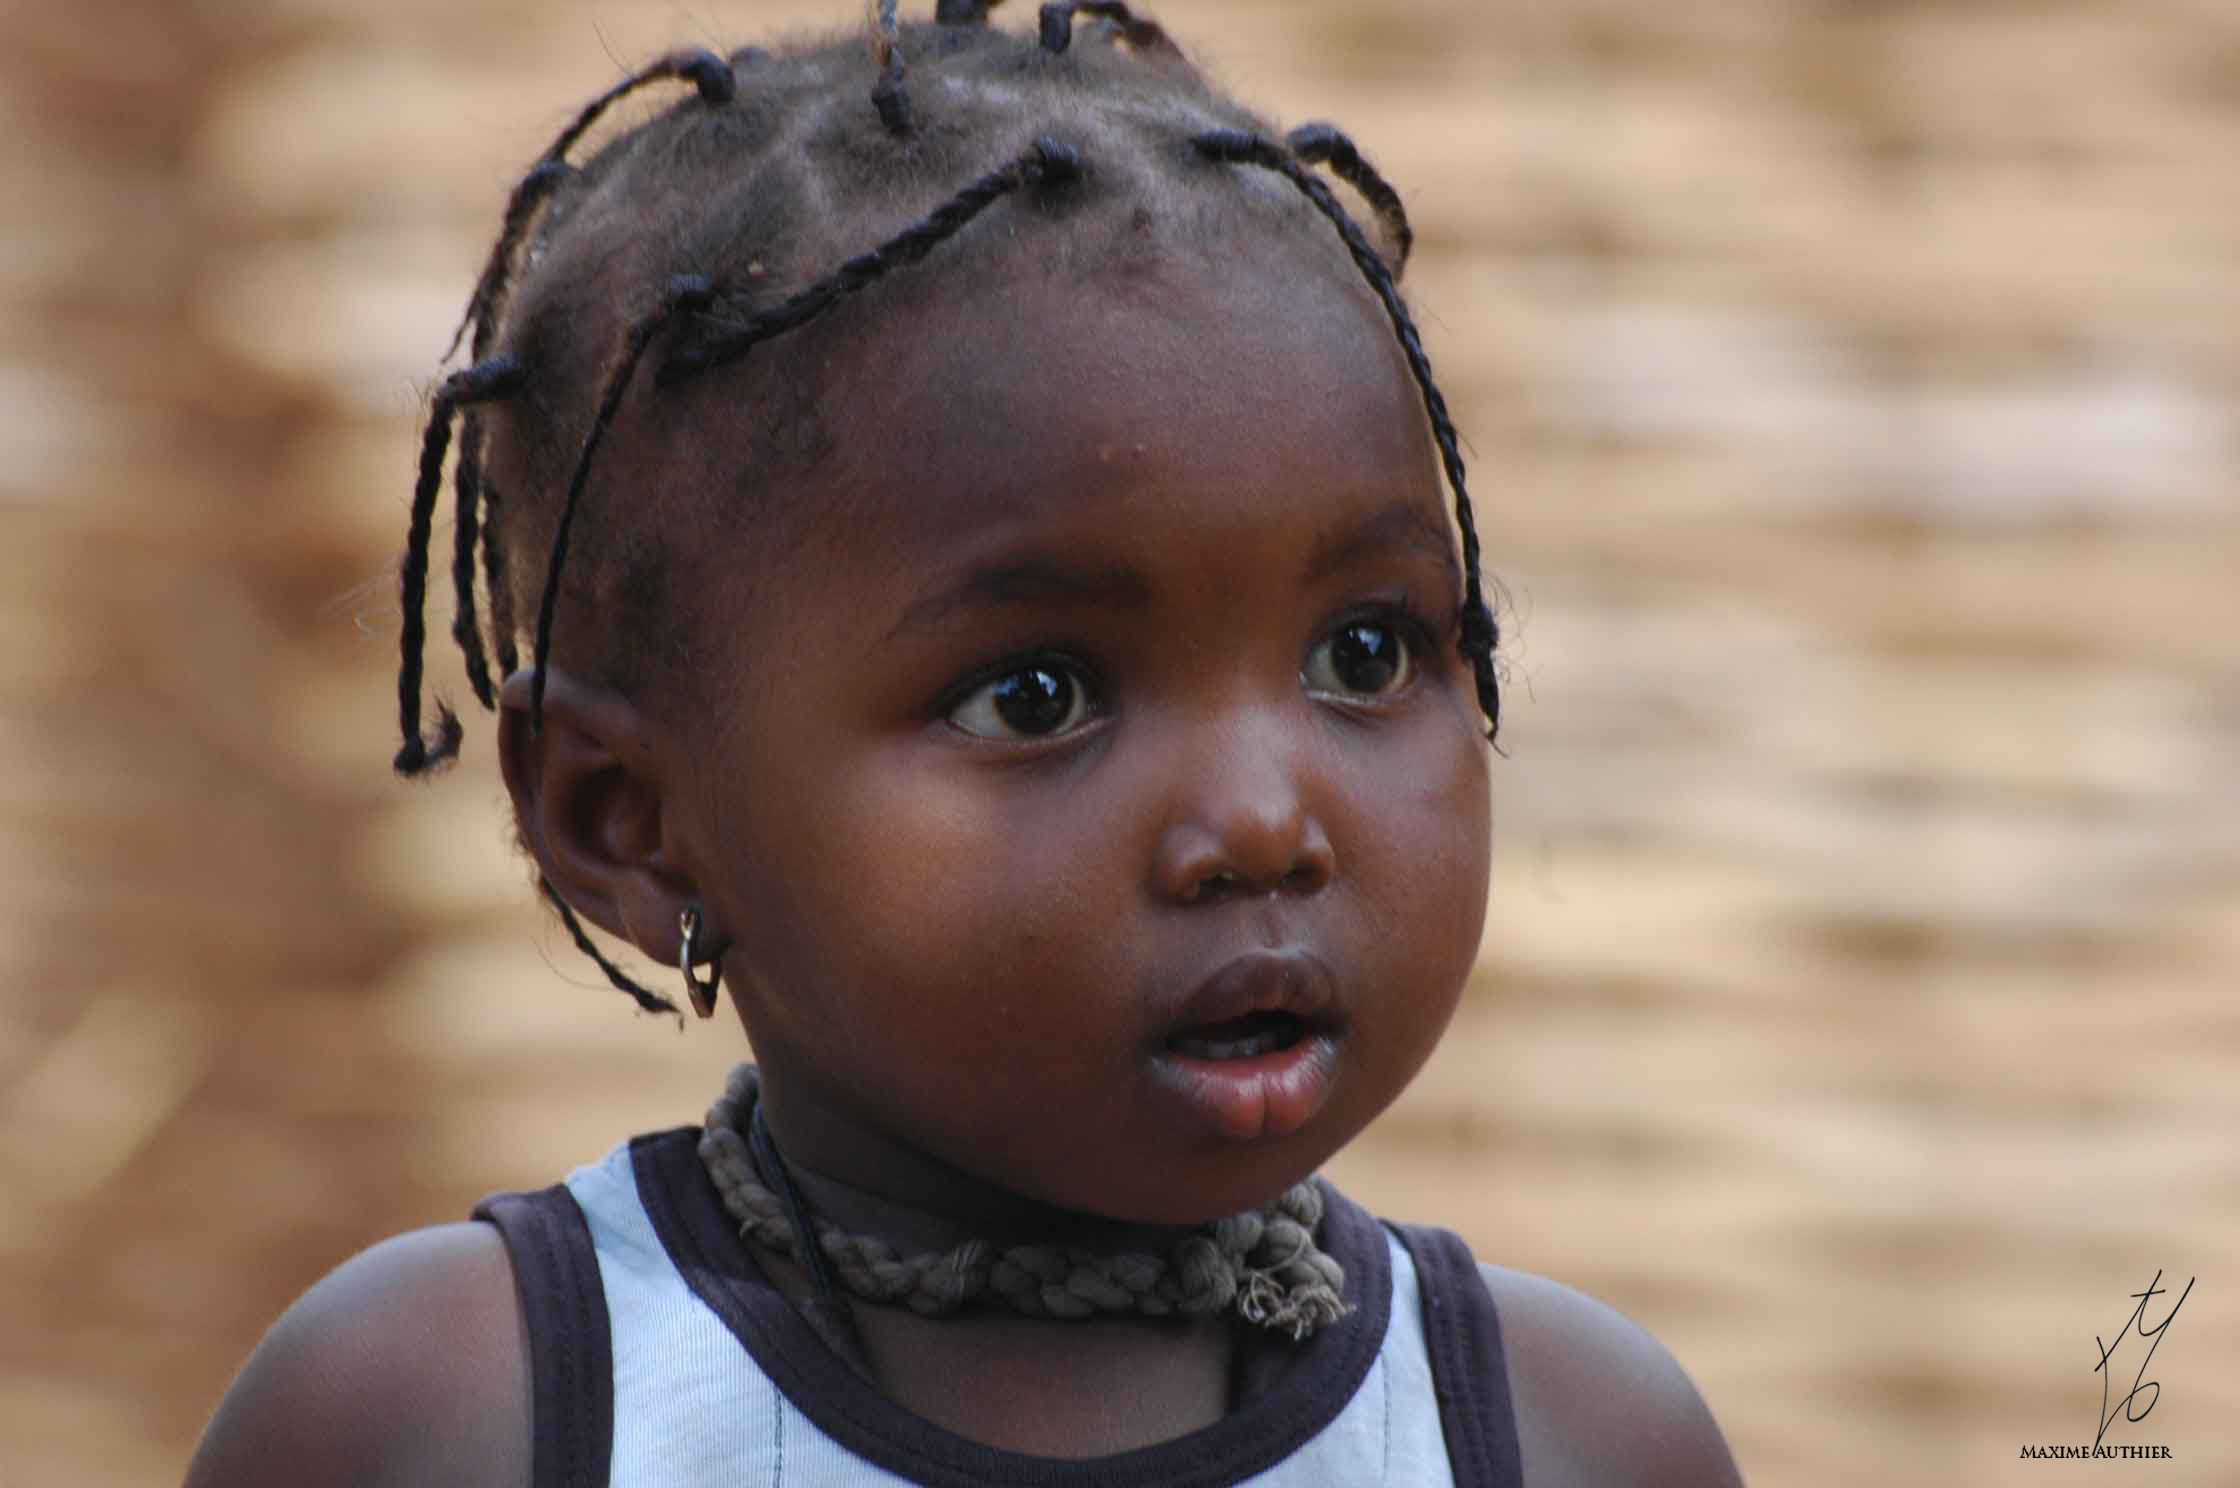 Petite fille africaine